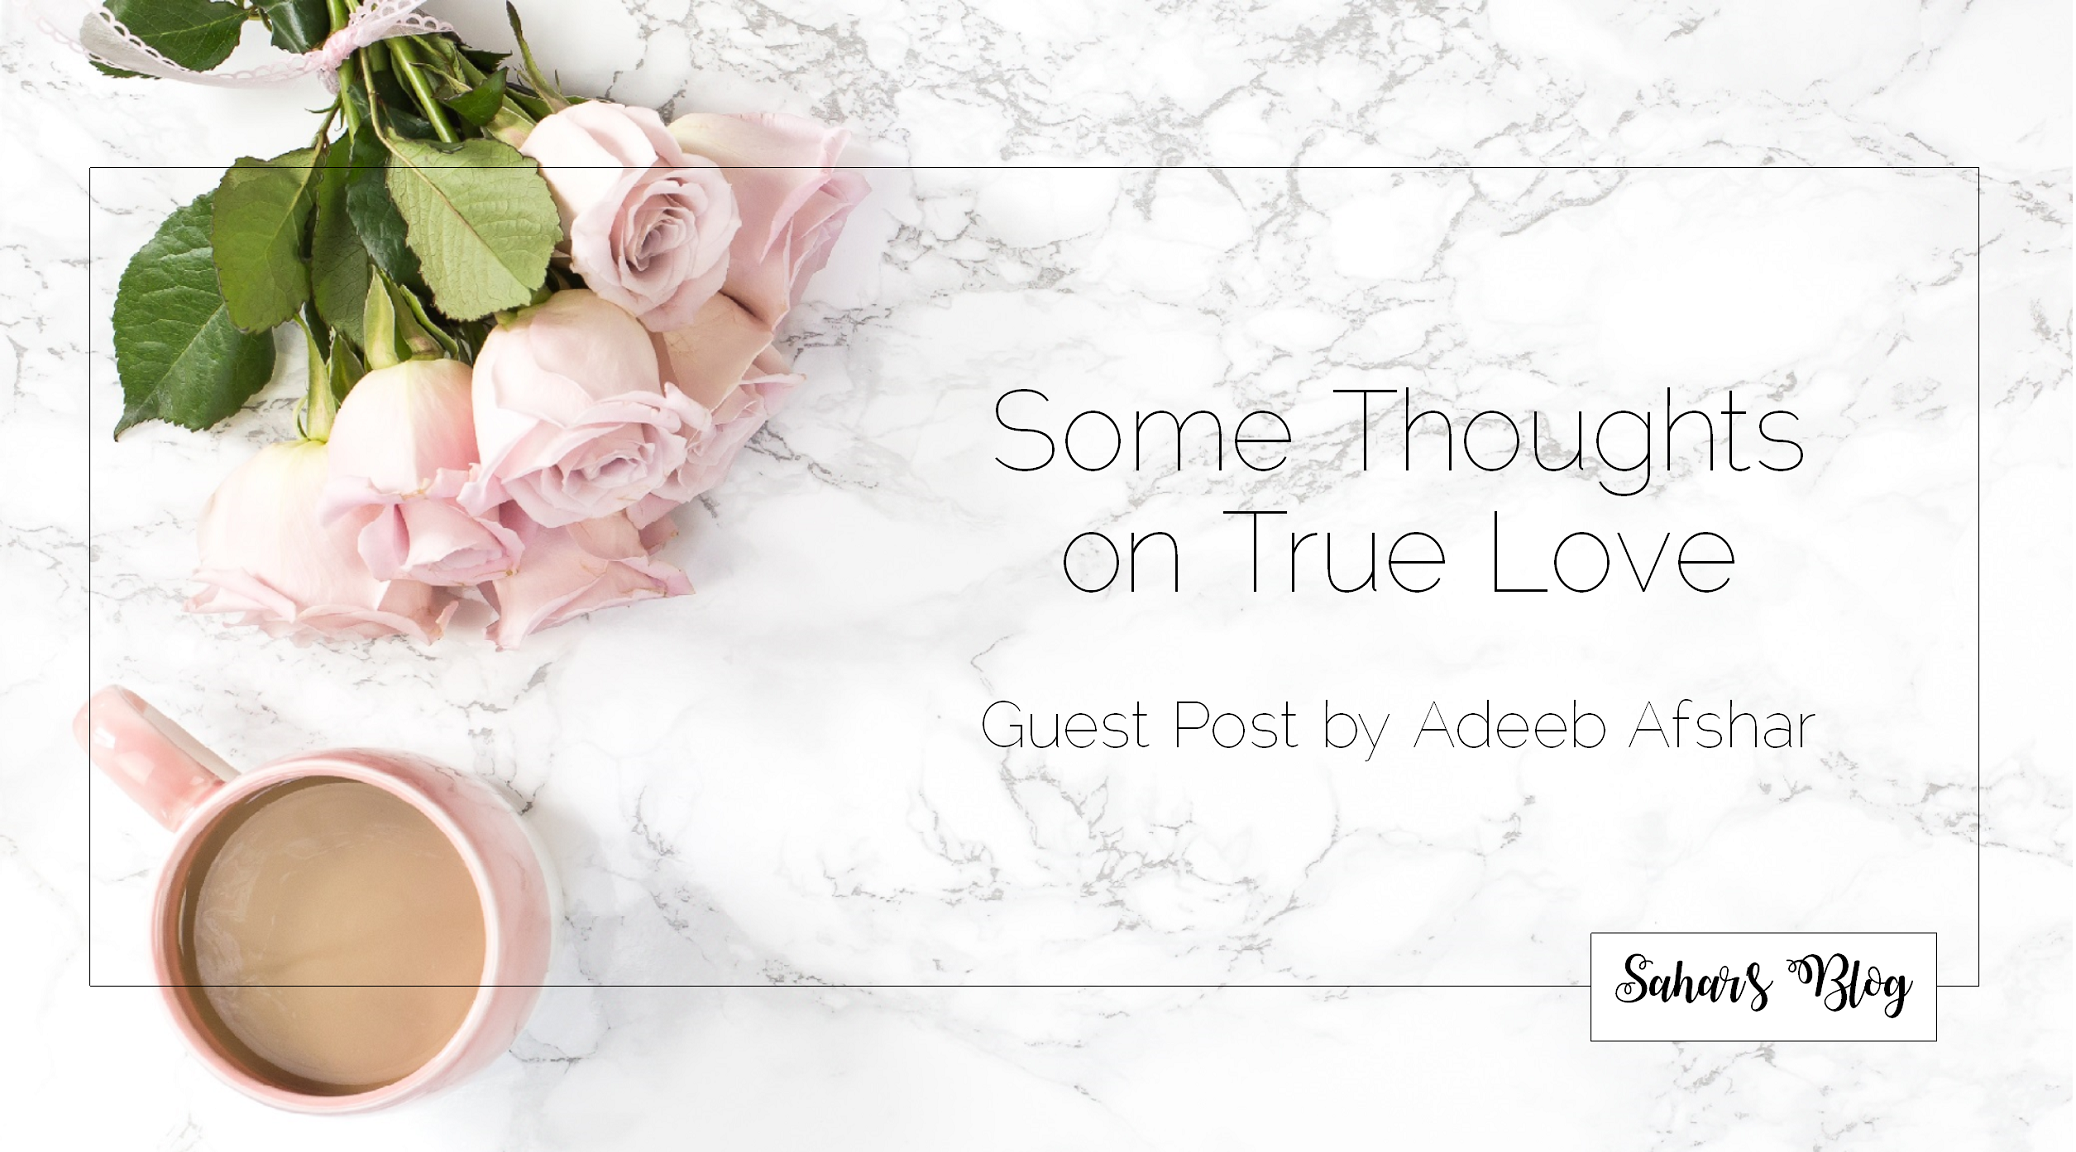 Some Thoughts on True Love: Guest Post by Adeeb Afshar